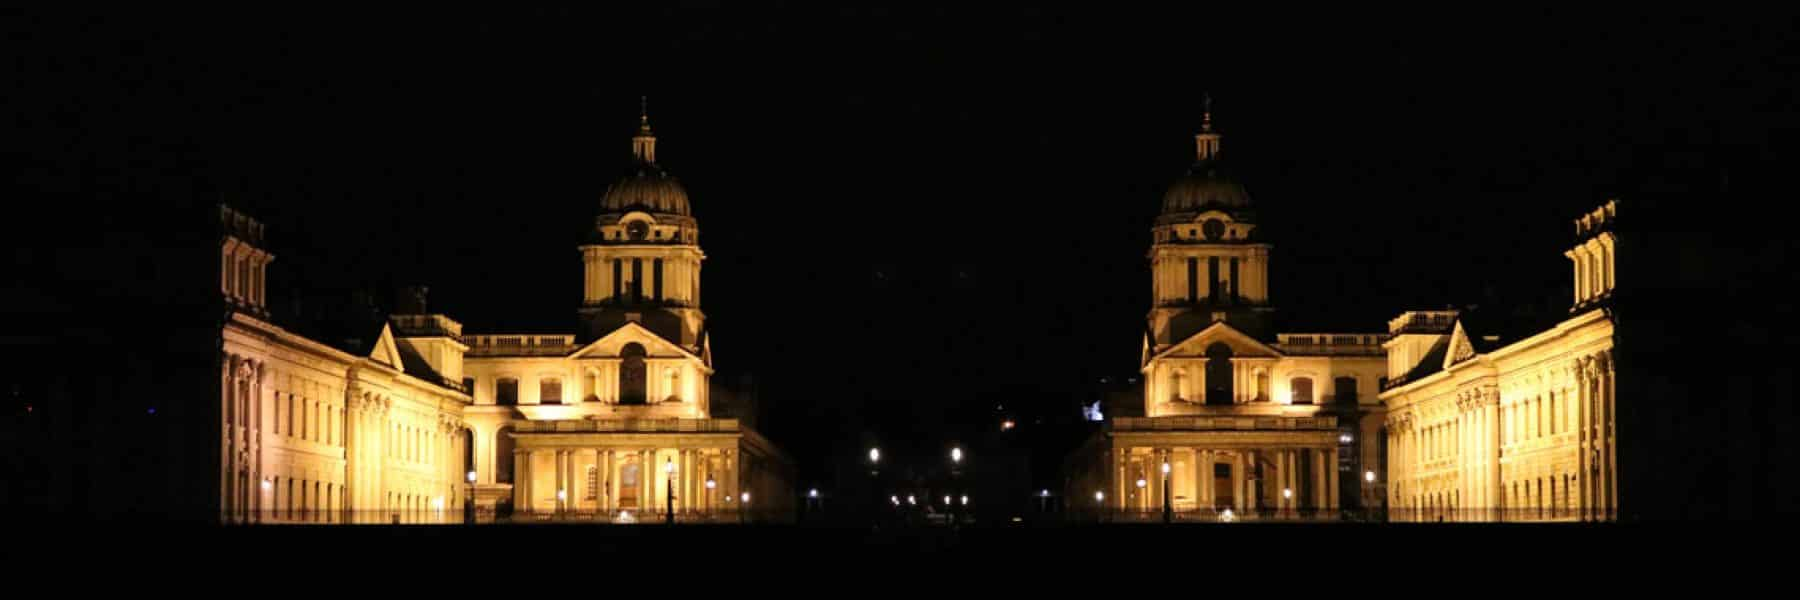 The Old Royal Naval College at night